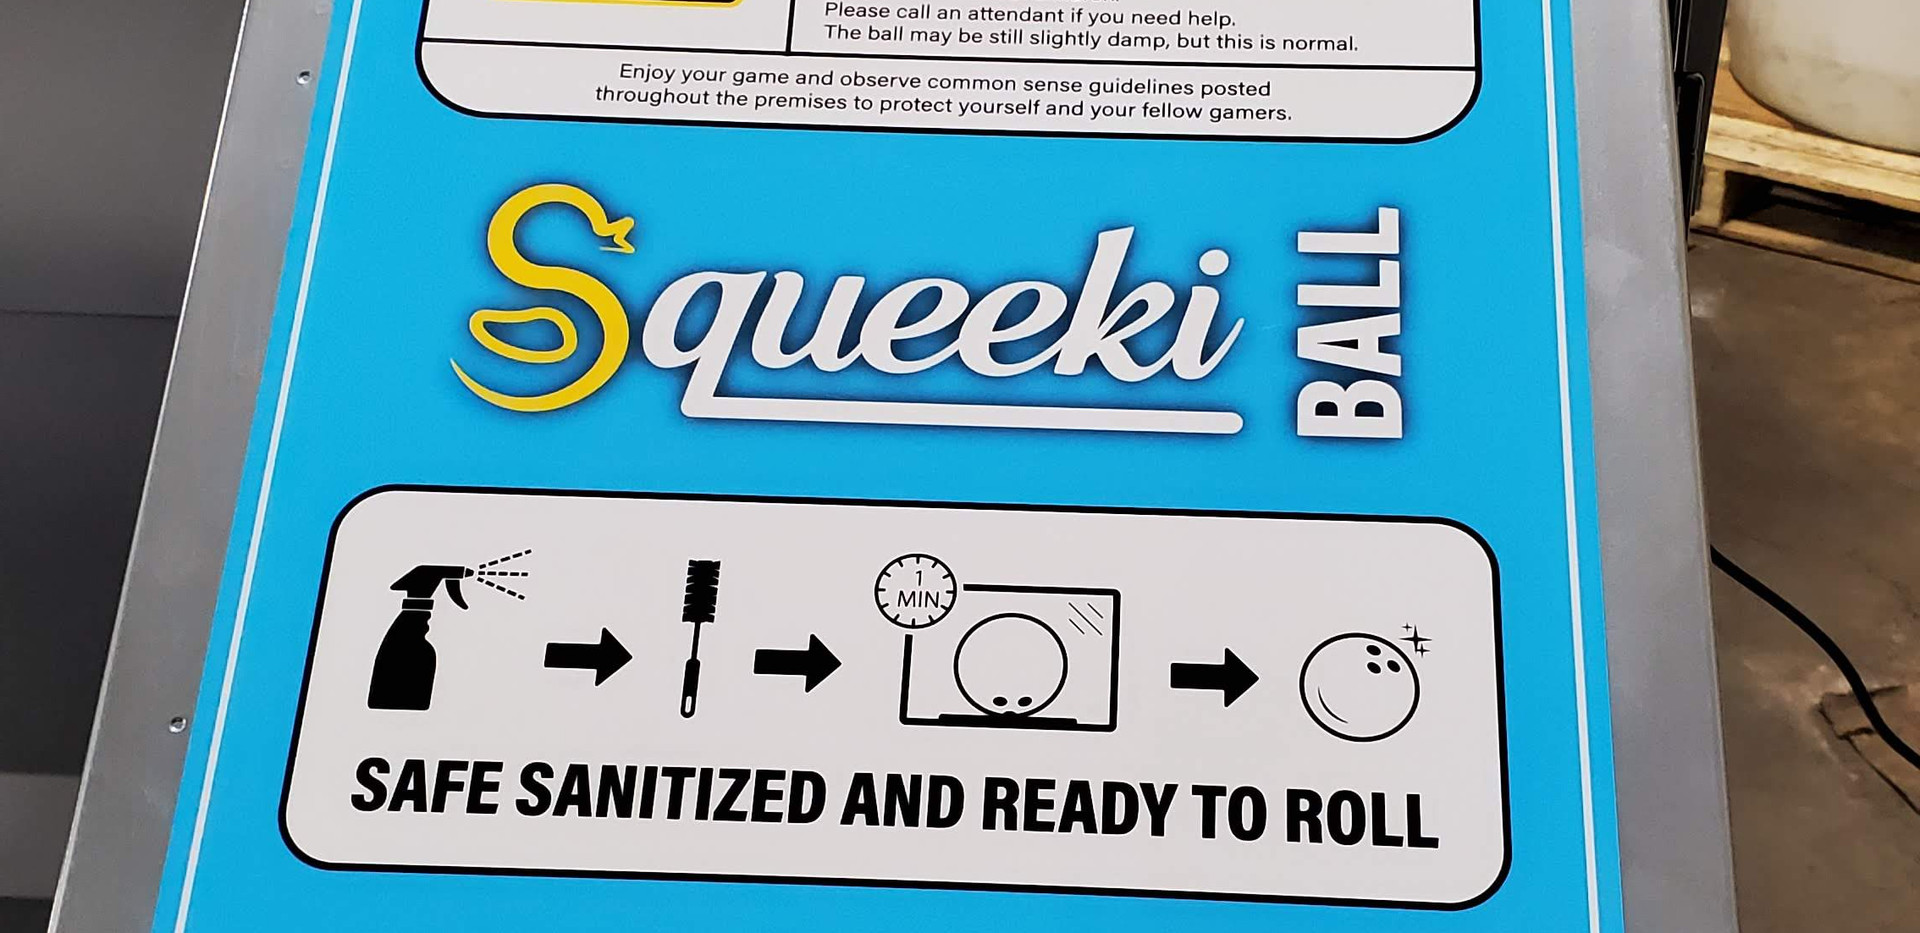 Squeeki Ball Front Label